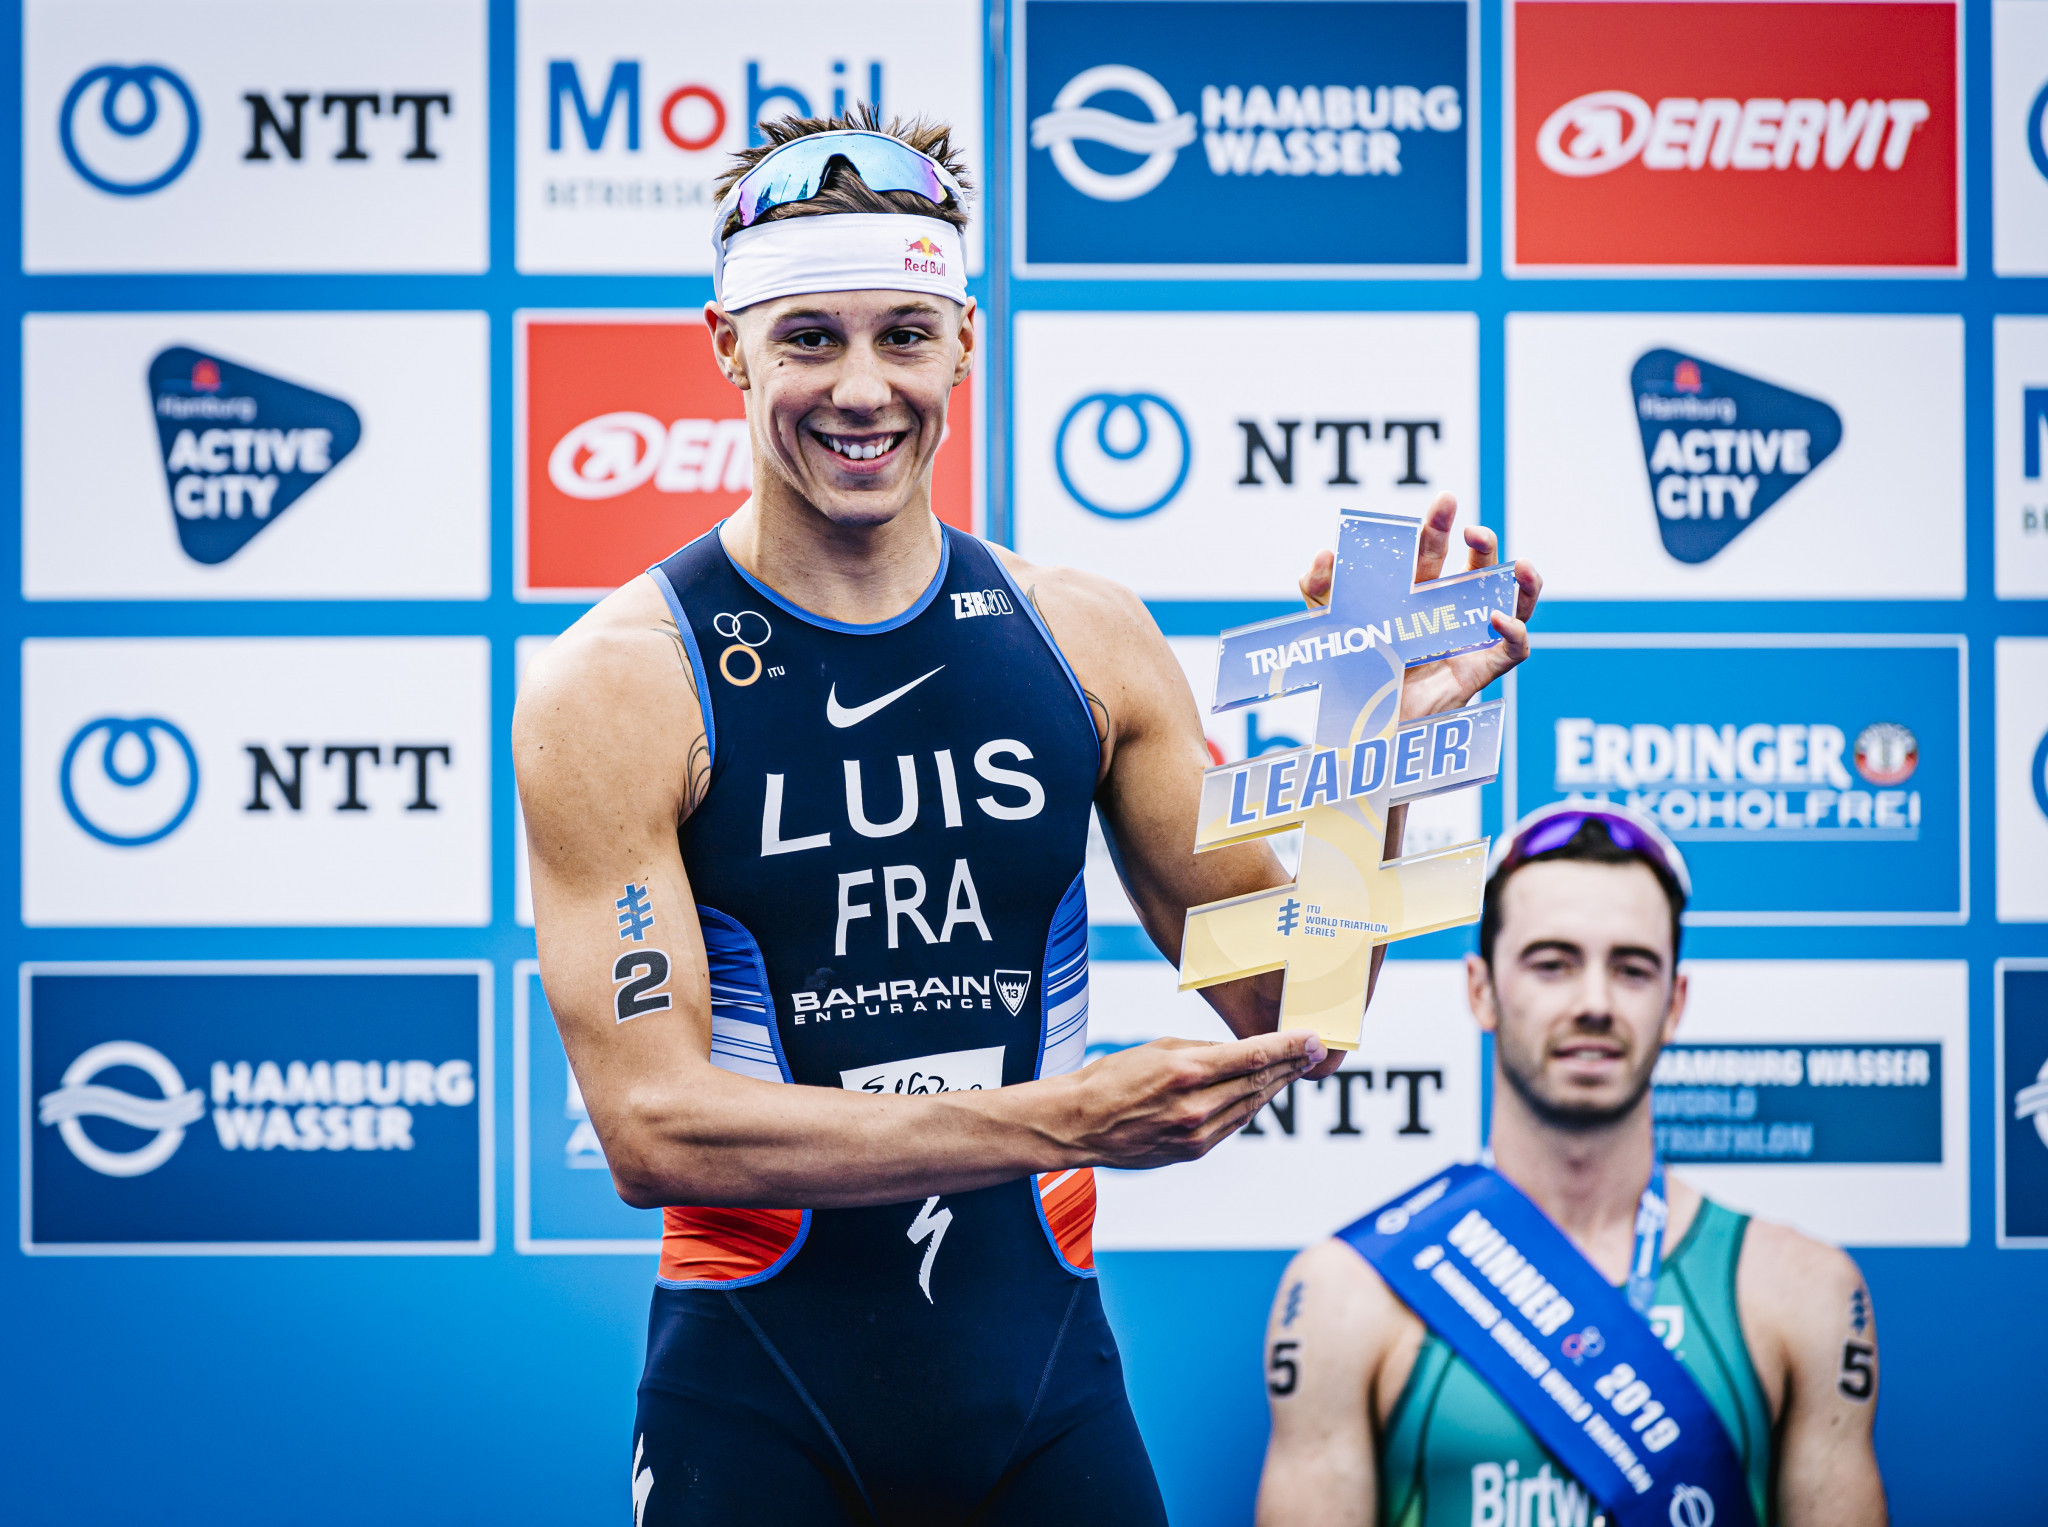 Rankings leader Luis targets World Triathlon Series victory in Edmonton